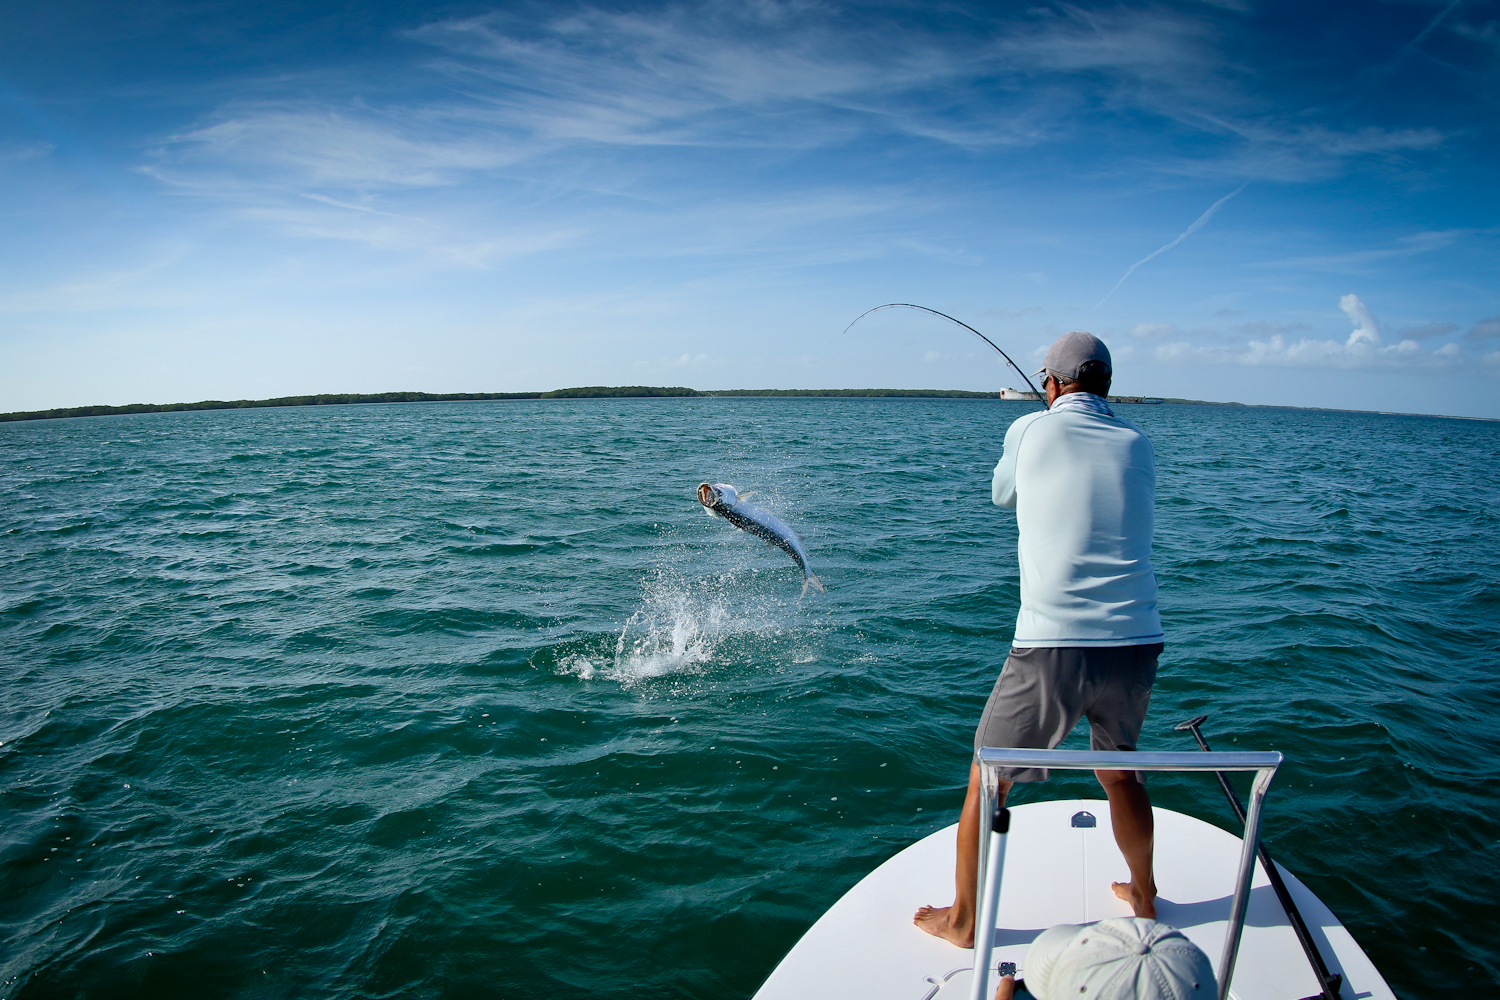 Thanks to our guide Elyses for this great capture of a fish I was fighting as it jumped near our skiff.